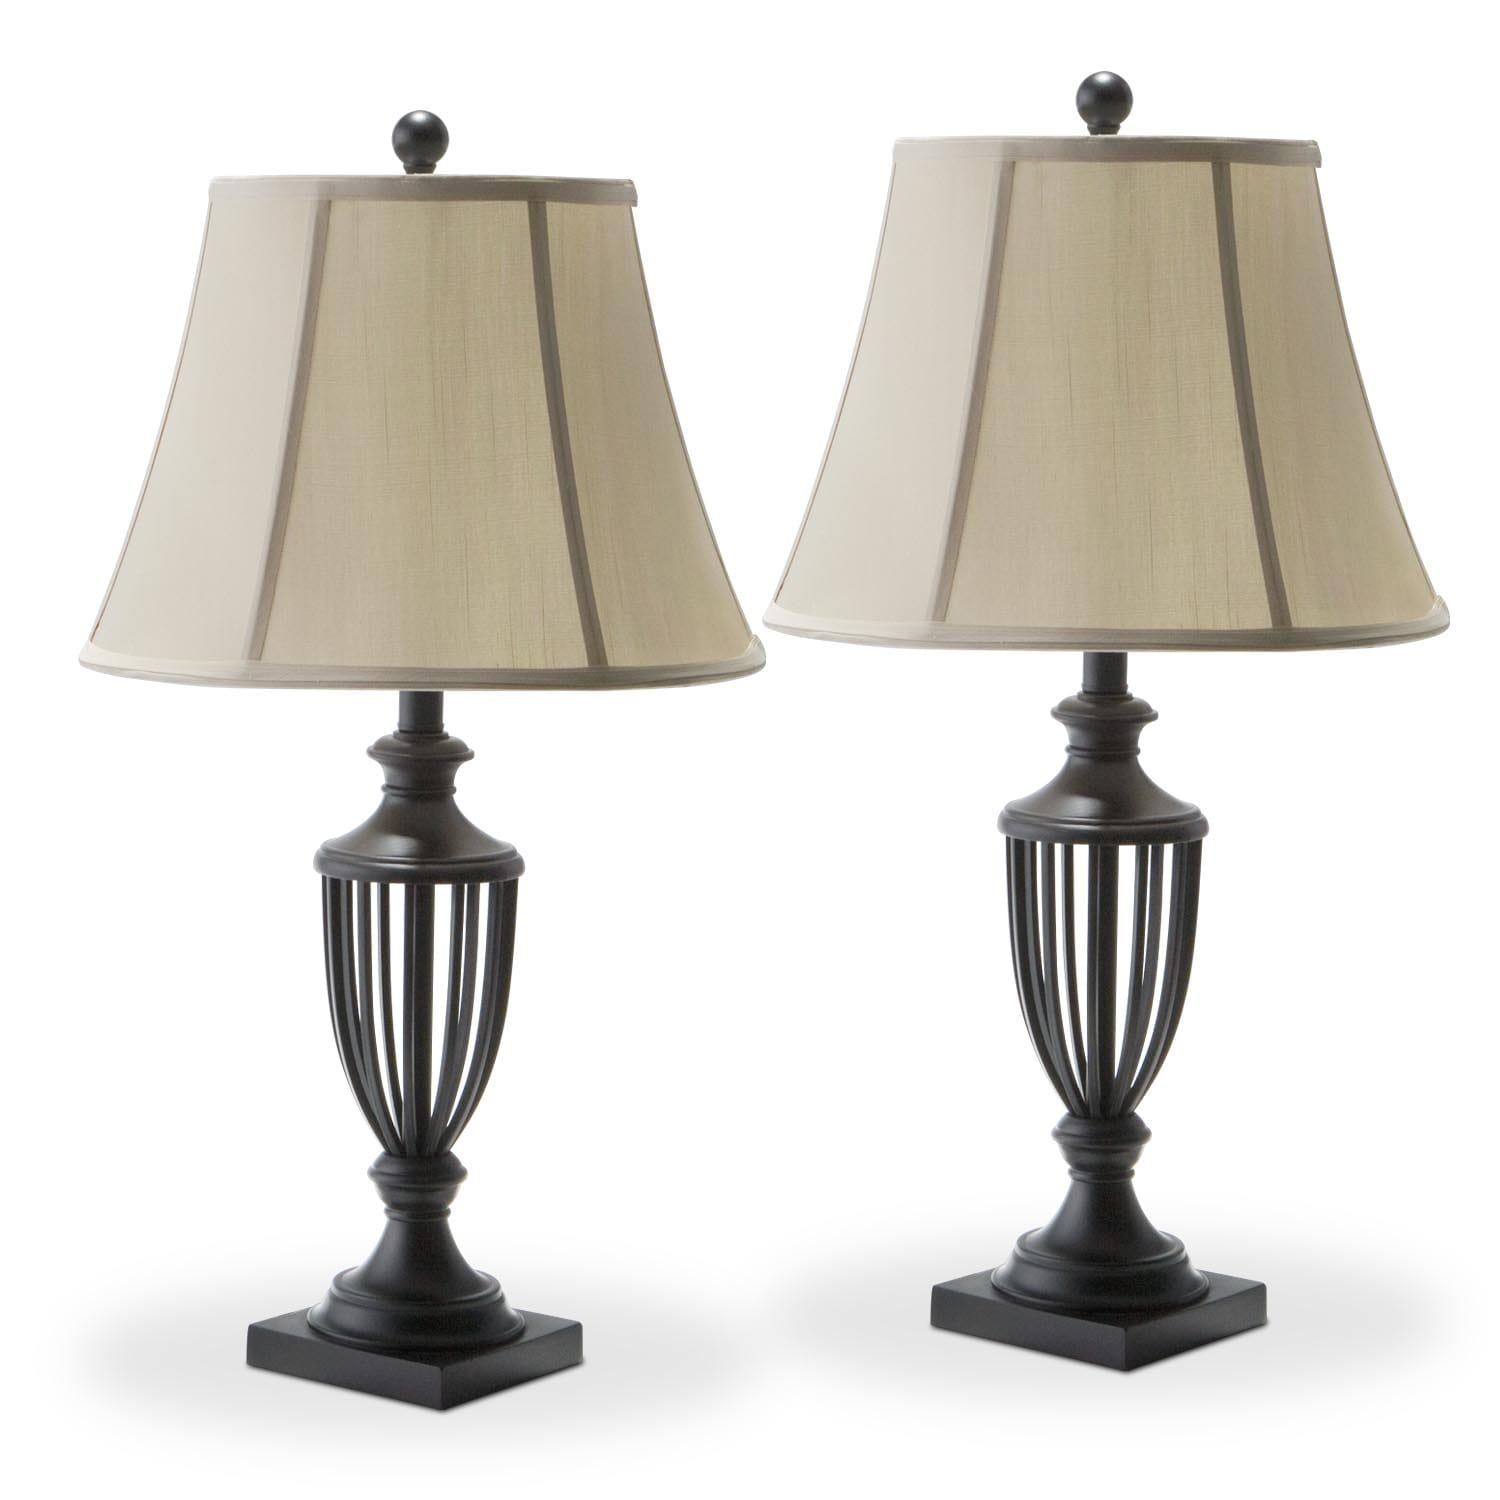 Mason 2-Pack Table Lamps